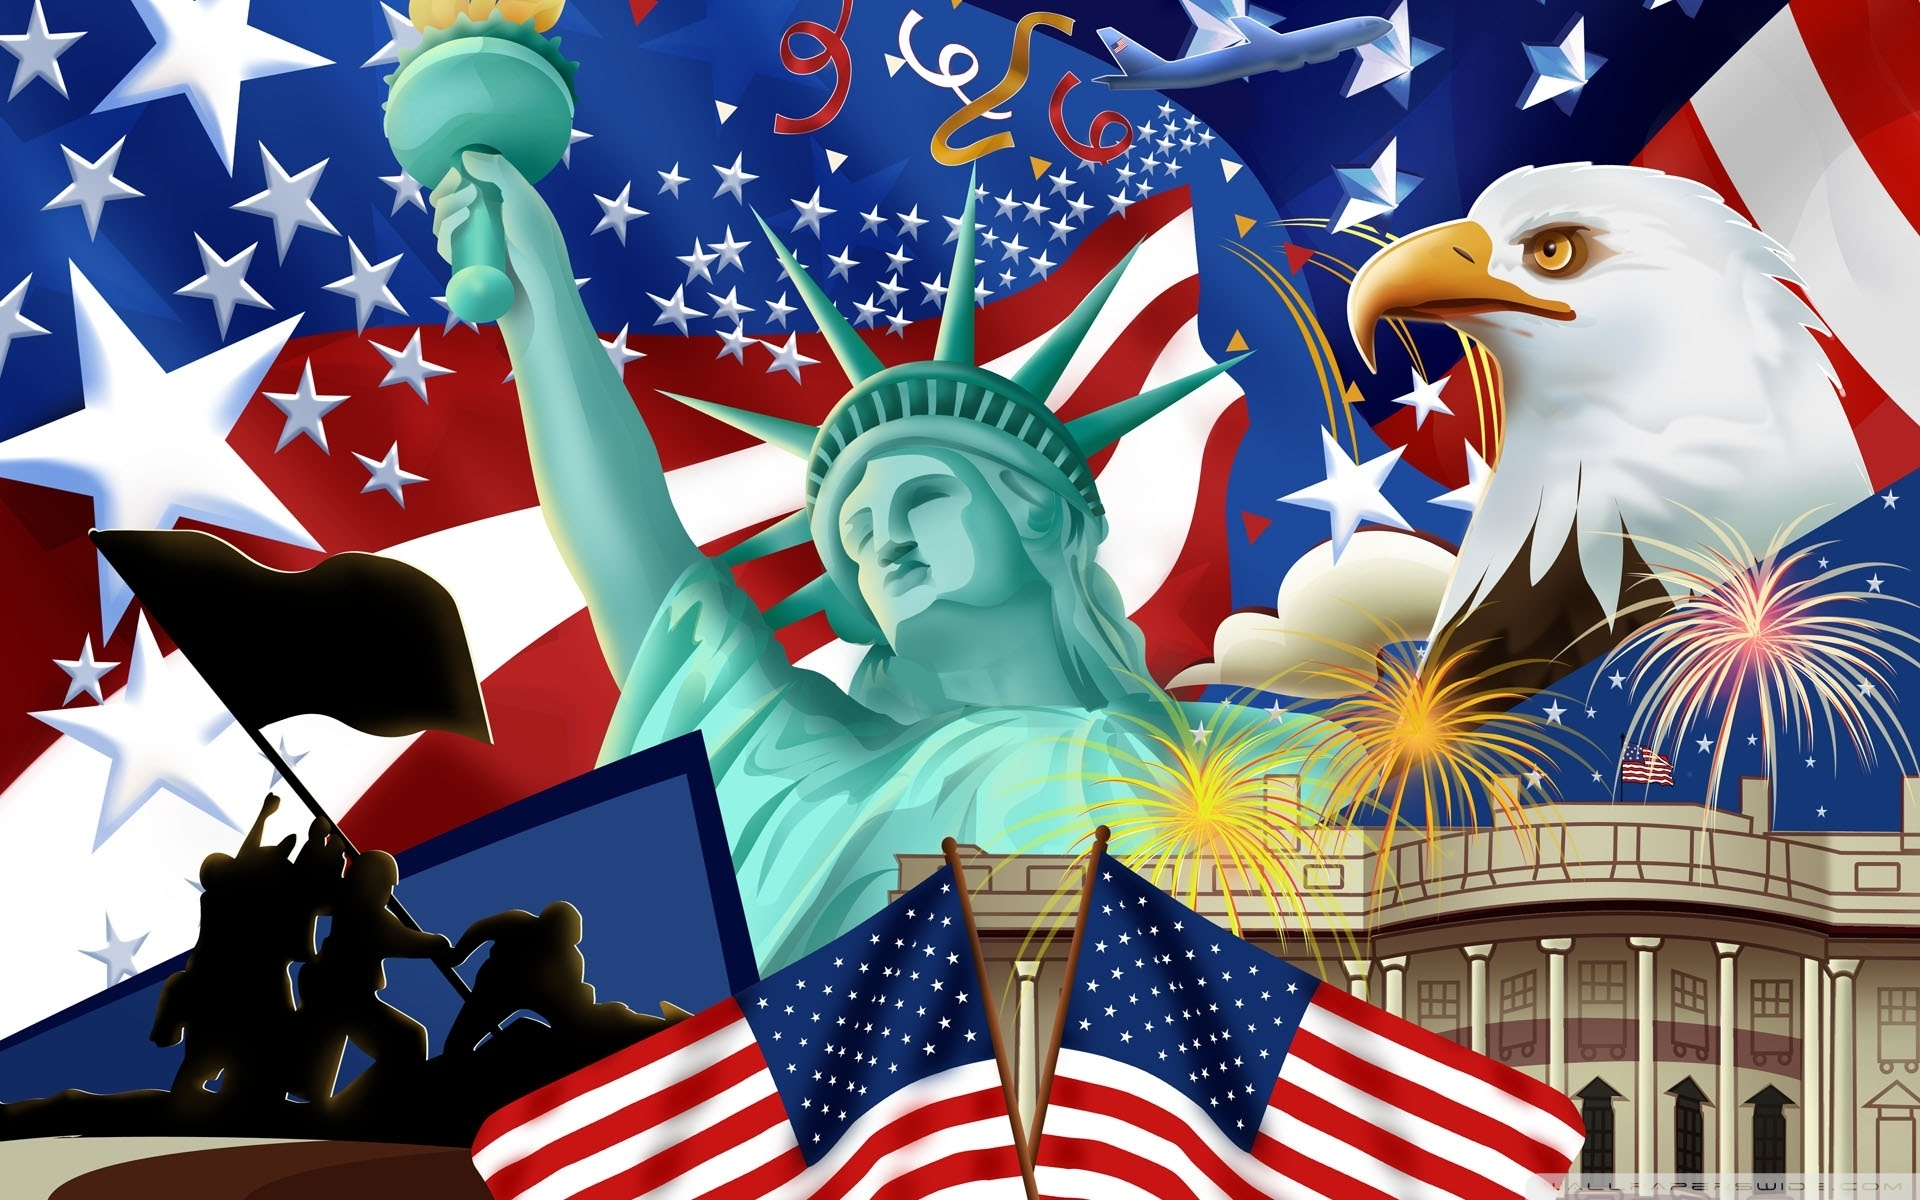 10 Top 4 Of July Wallpaper FULL HD 1920×1080 For PC Background